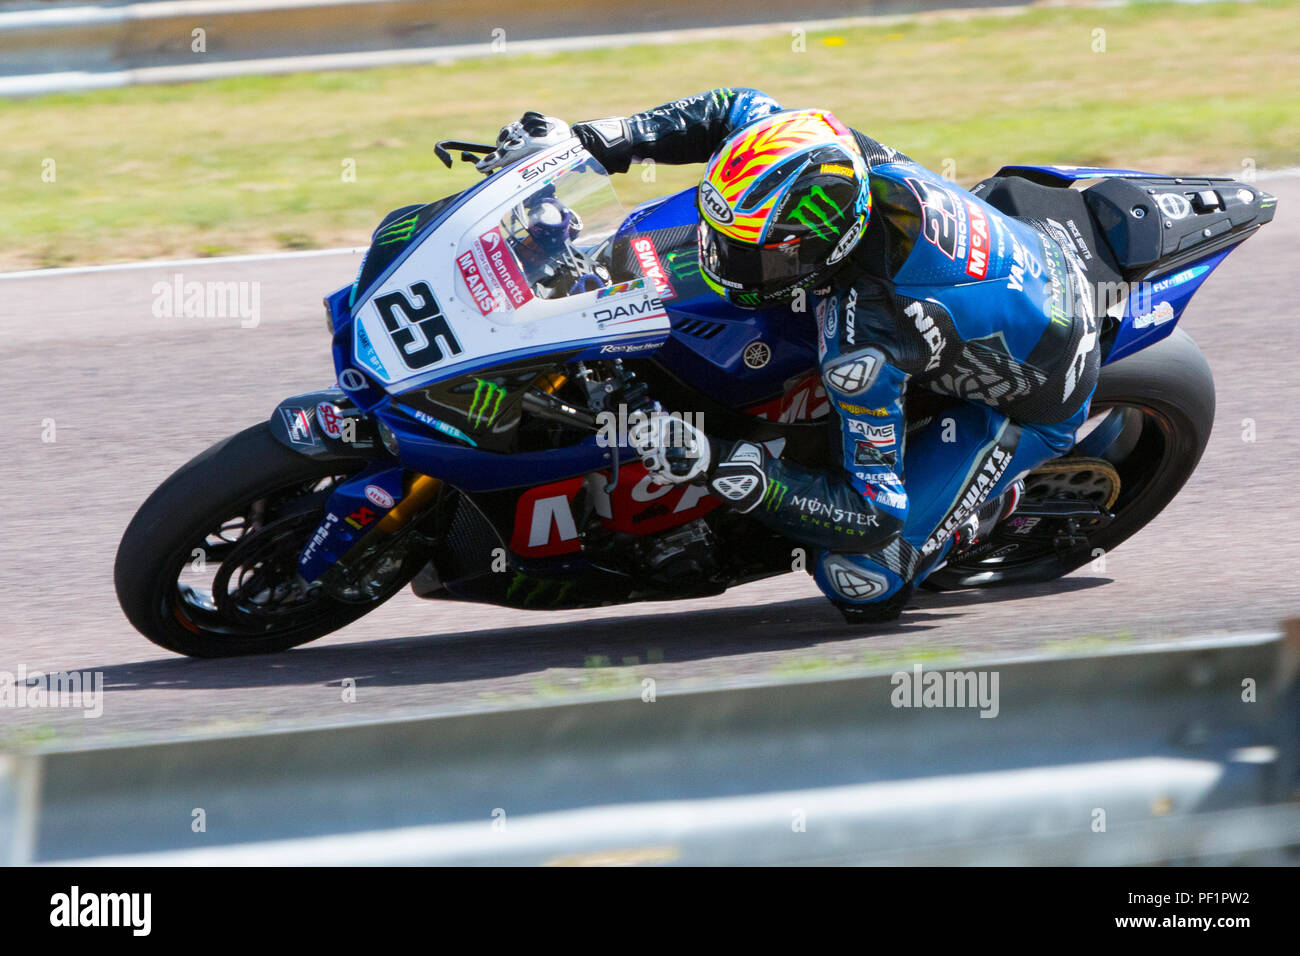 Josh Brookes. McAMS Yamaha. Bennetts, British Super Bike, Thruxton, Hampshire, UK,  2018. - Stock Image